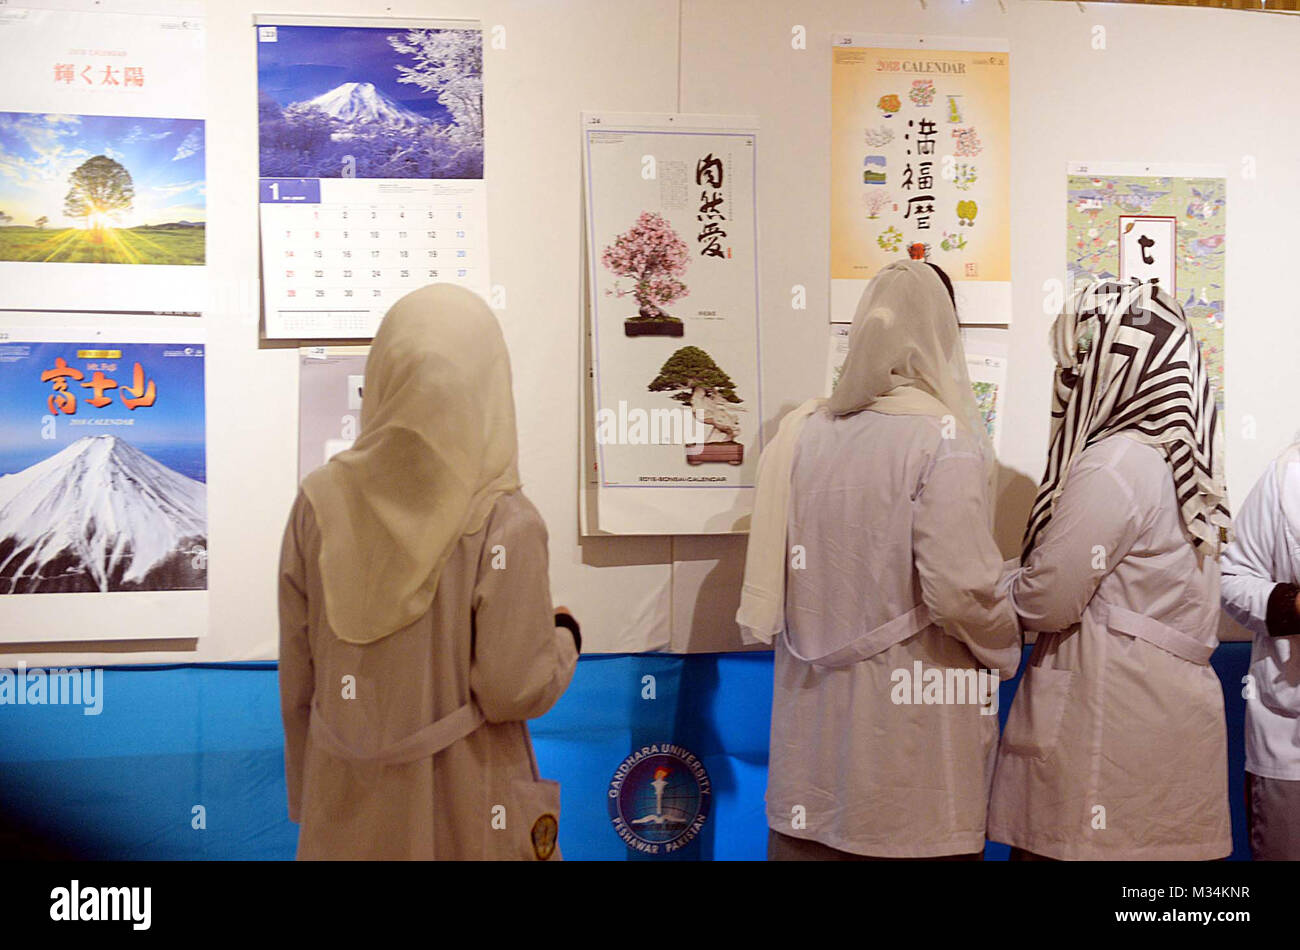 Students Are Keenly Watching Japanese Calendars During Calendars 2018 Stock Photo Alamy